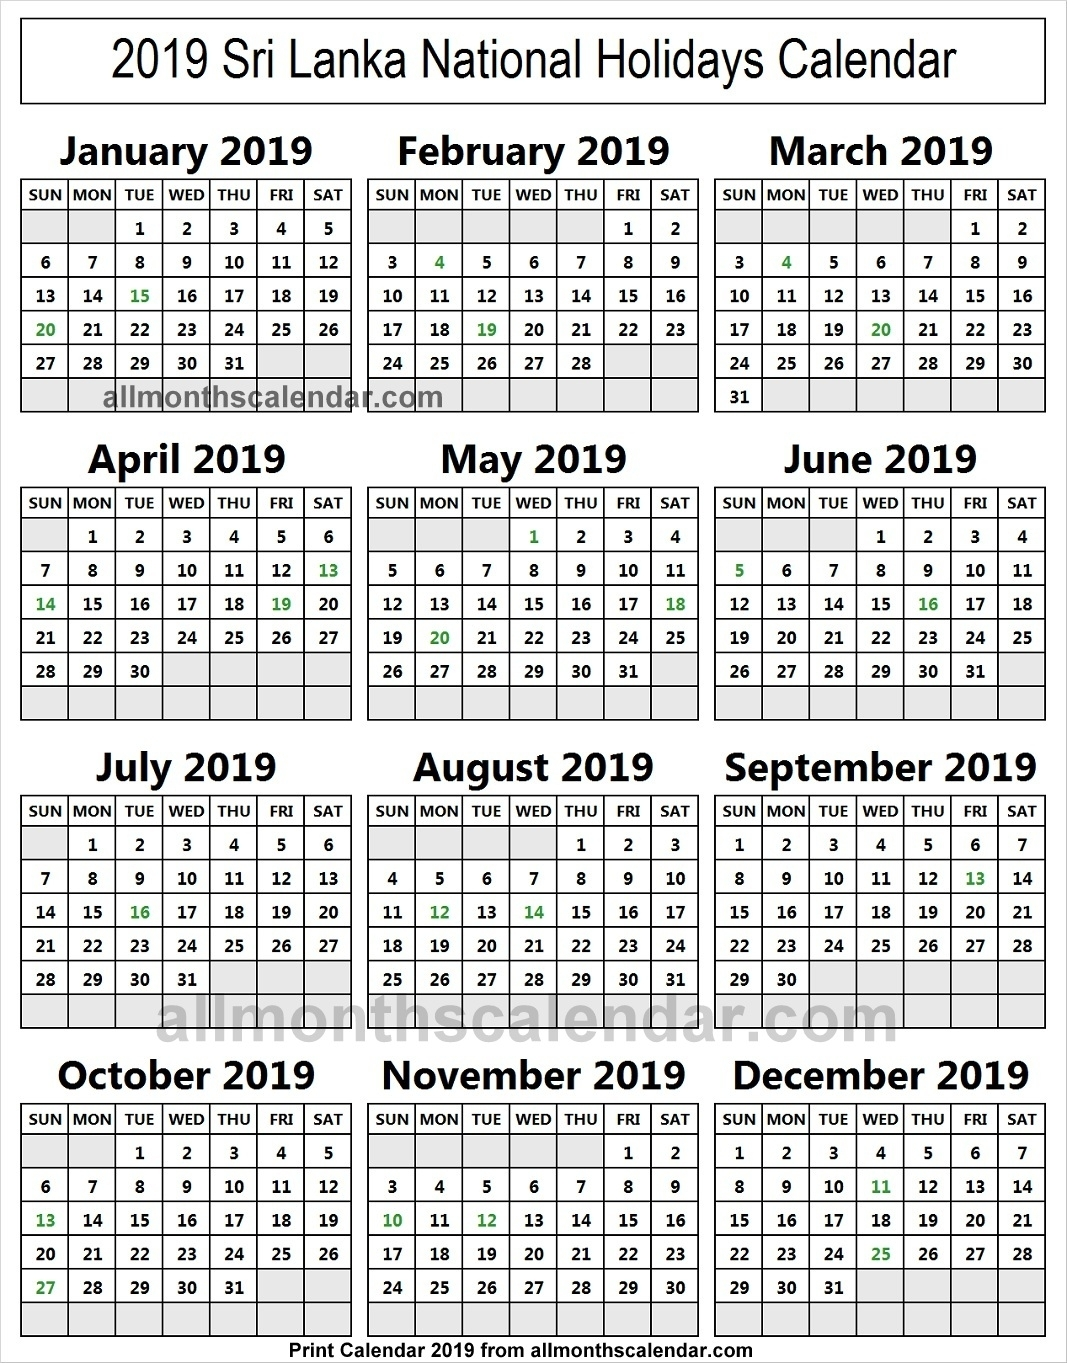 Sri Lanka Holiday List 2019 Calendar | 2019 Sri Lanka Calendar within List Ofhoidays In Sri Lanka